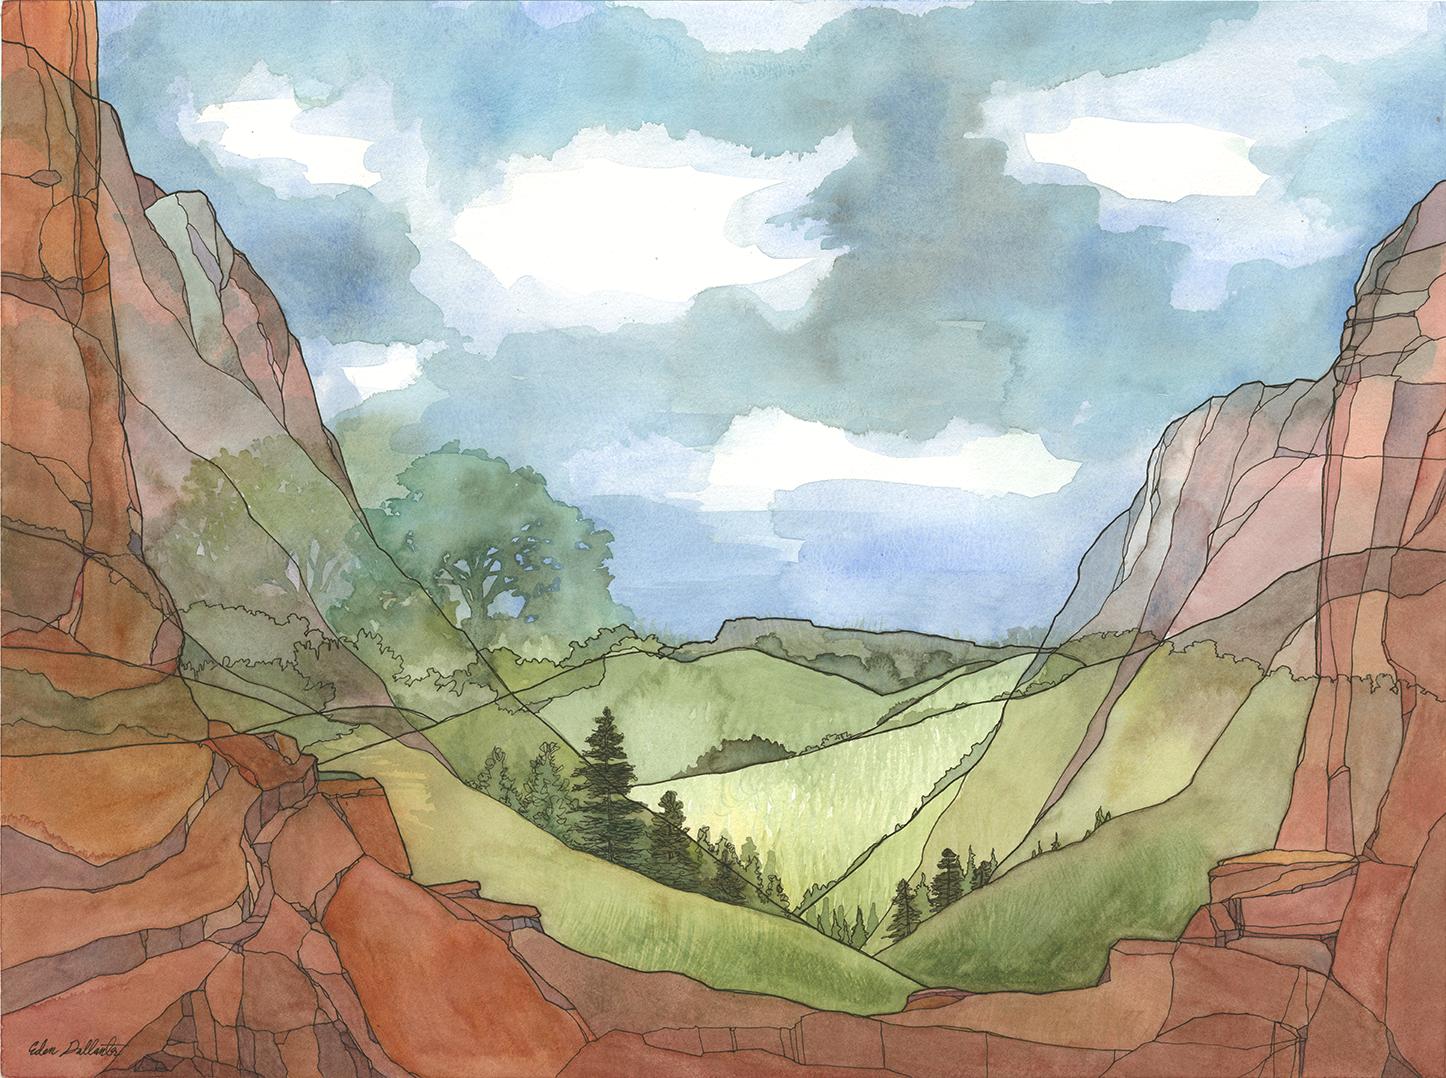 Composite Landscape V: Canyons. (2019) Ink and watercolor on paper.